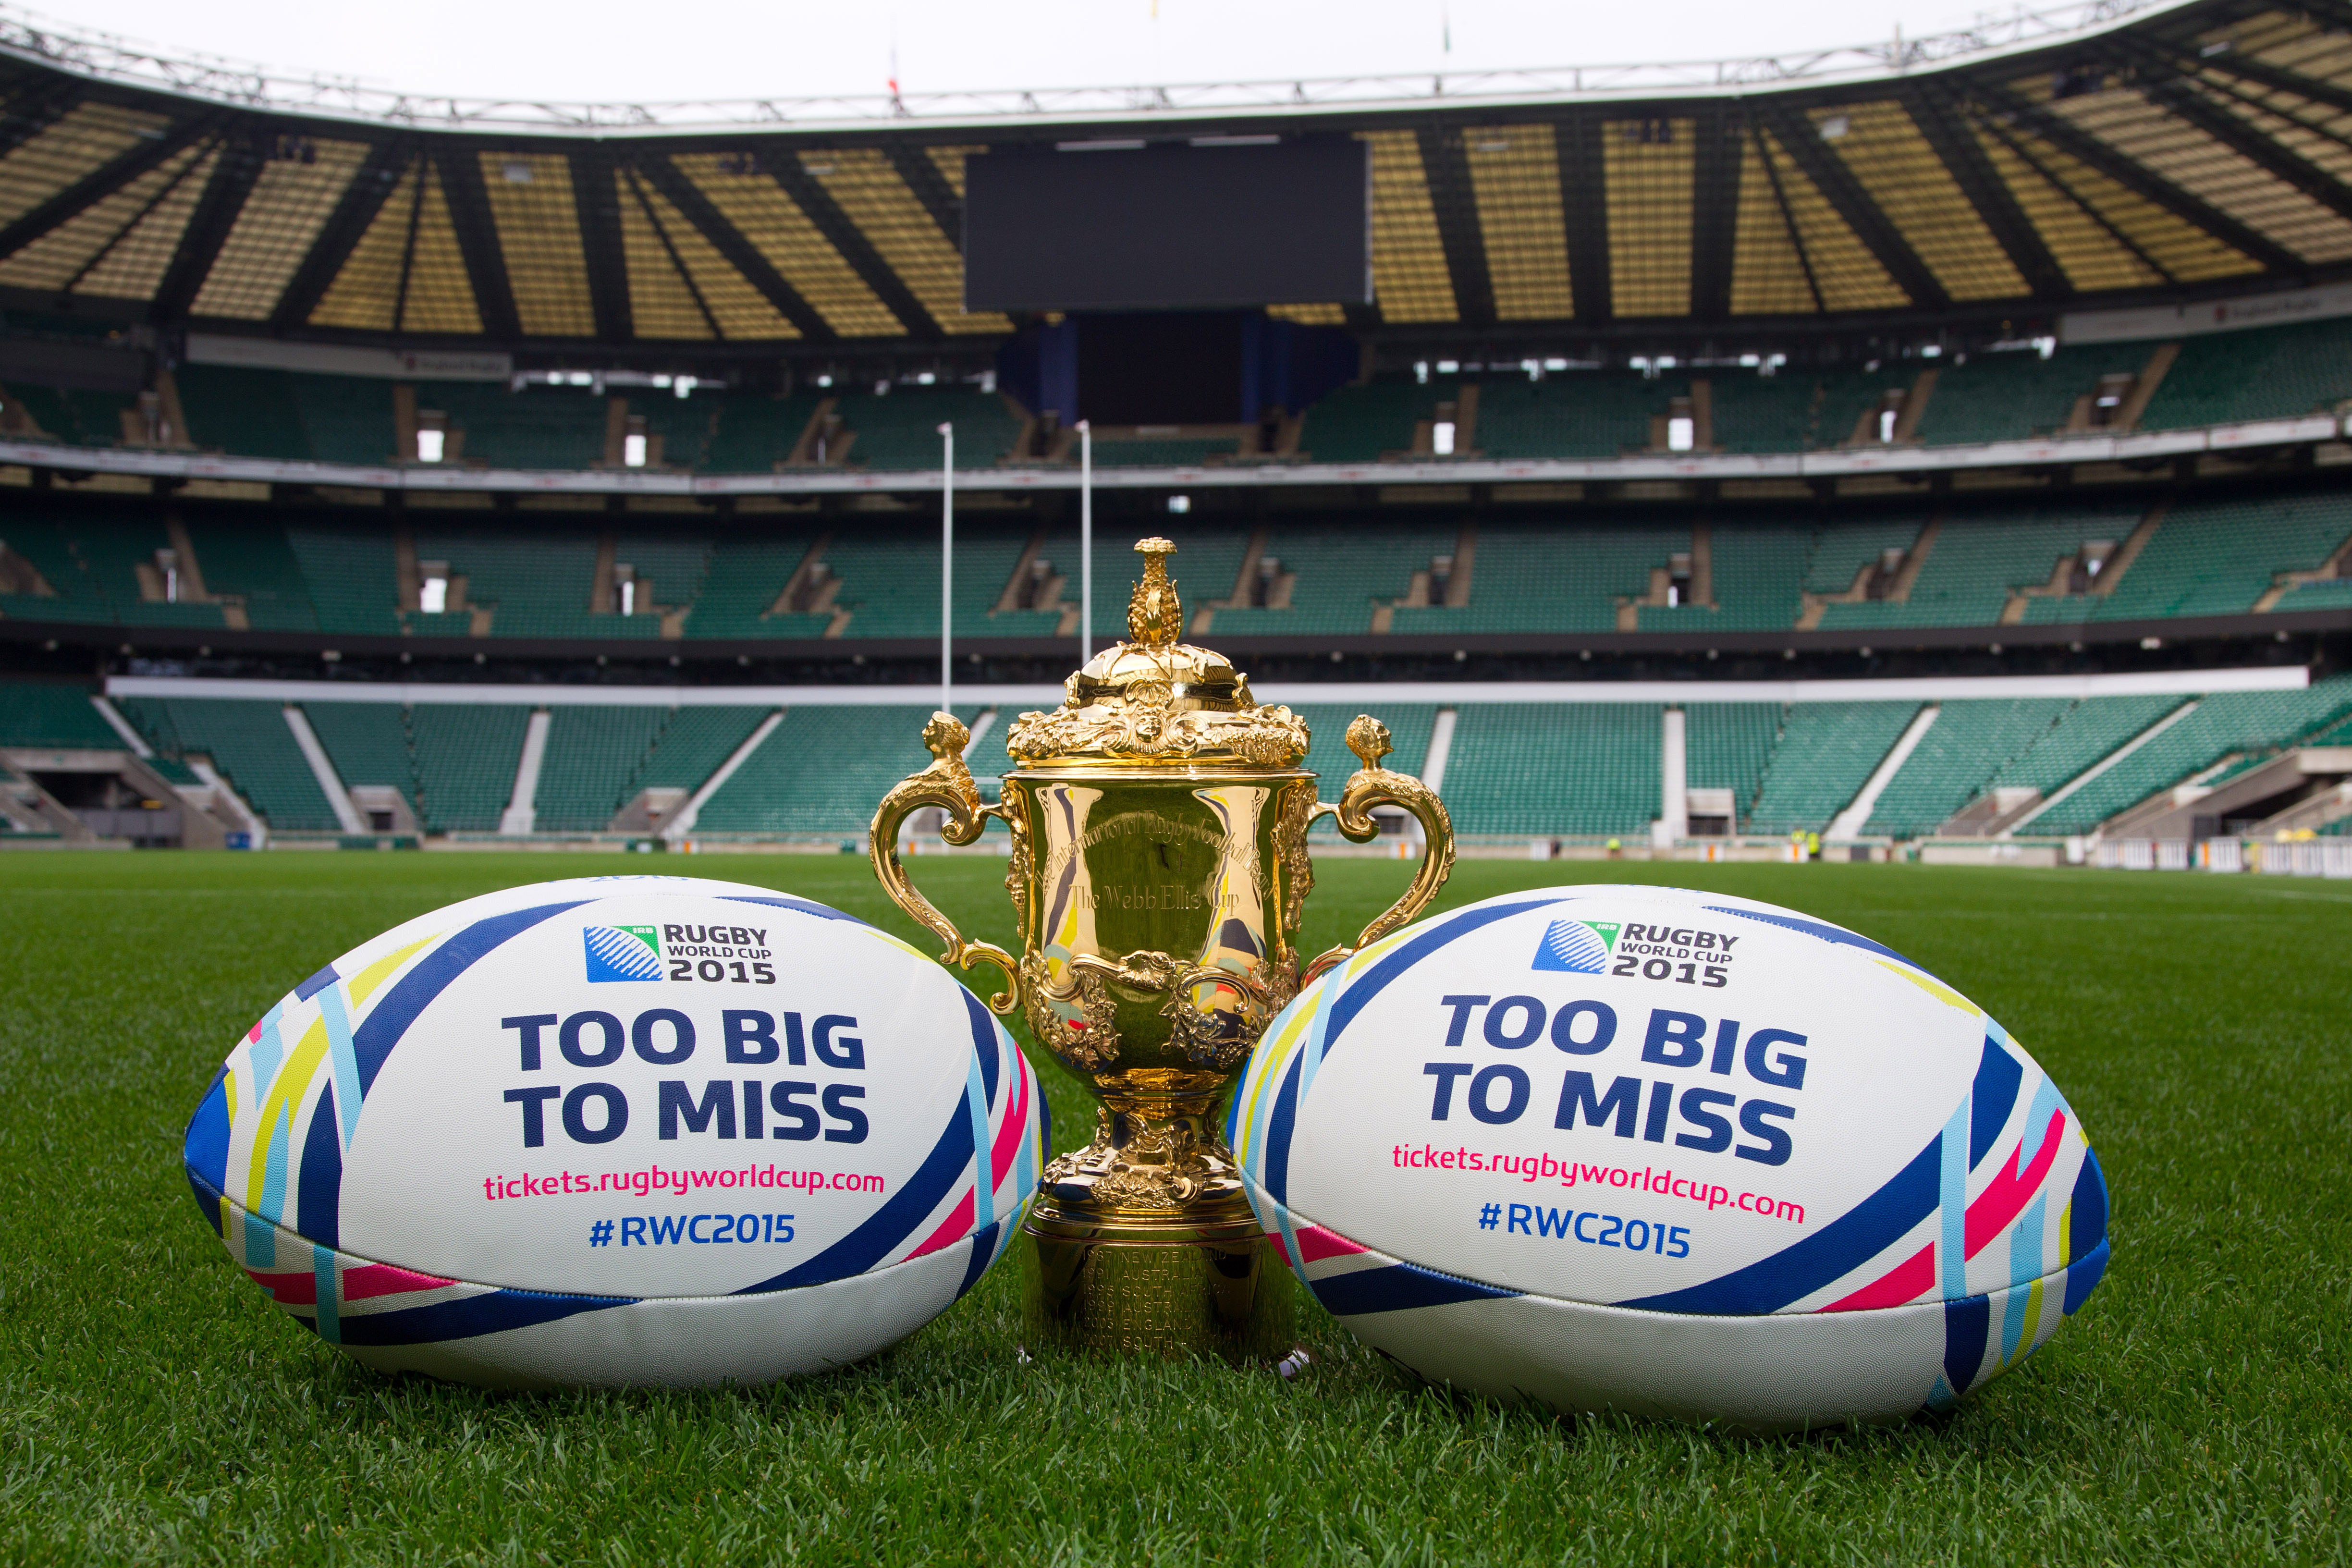 4896x3264 - Rugby World Cup 2015 Wallpapers 7